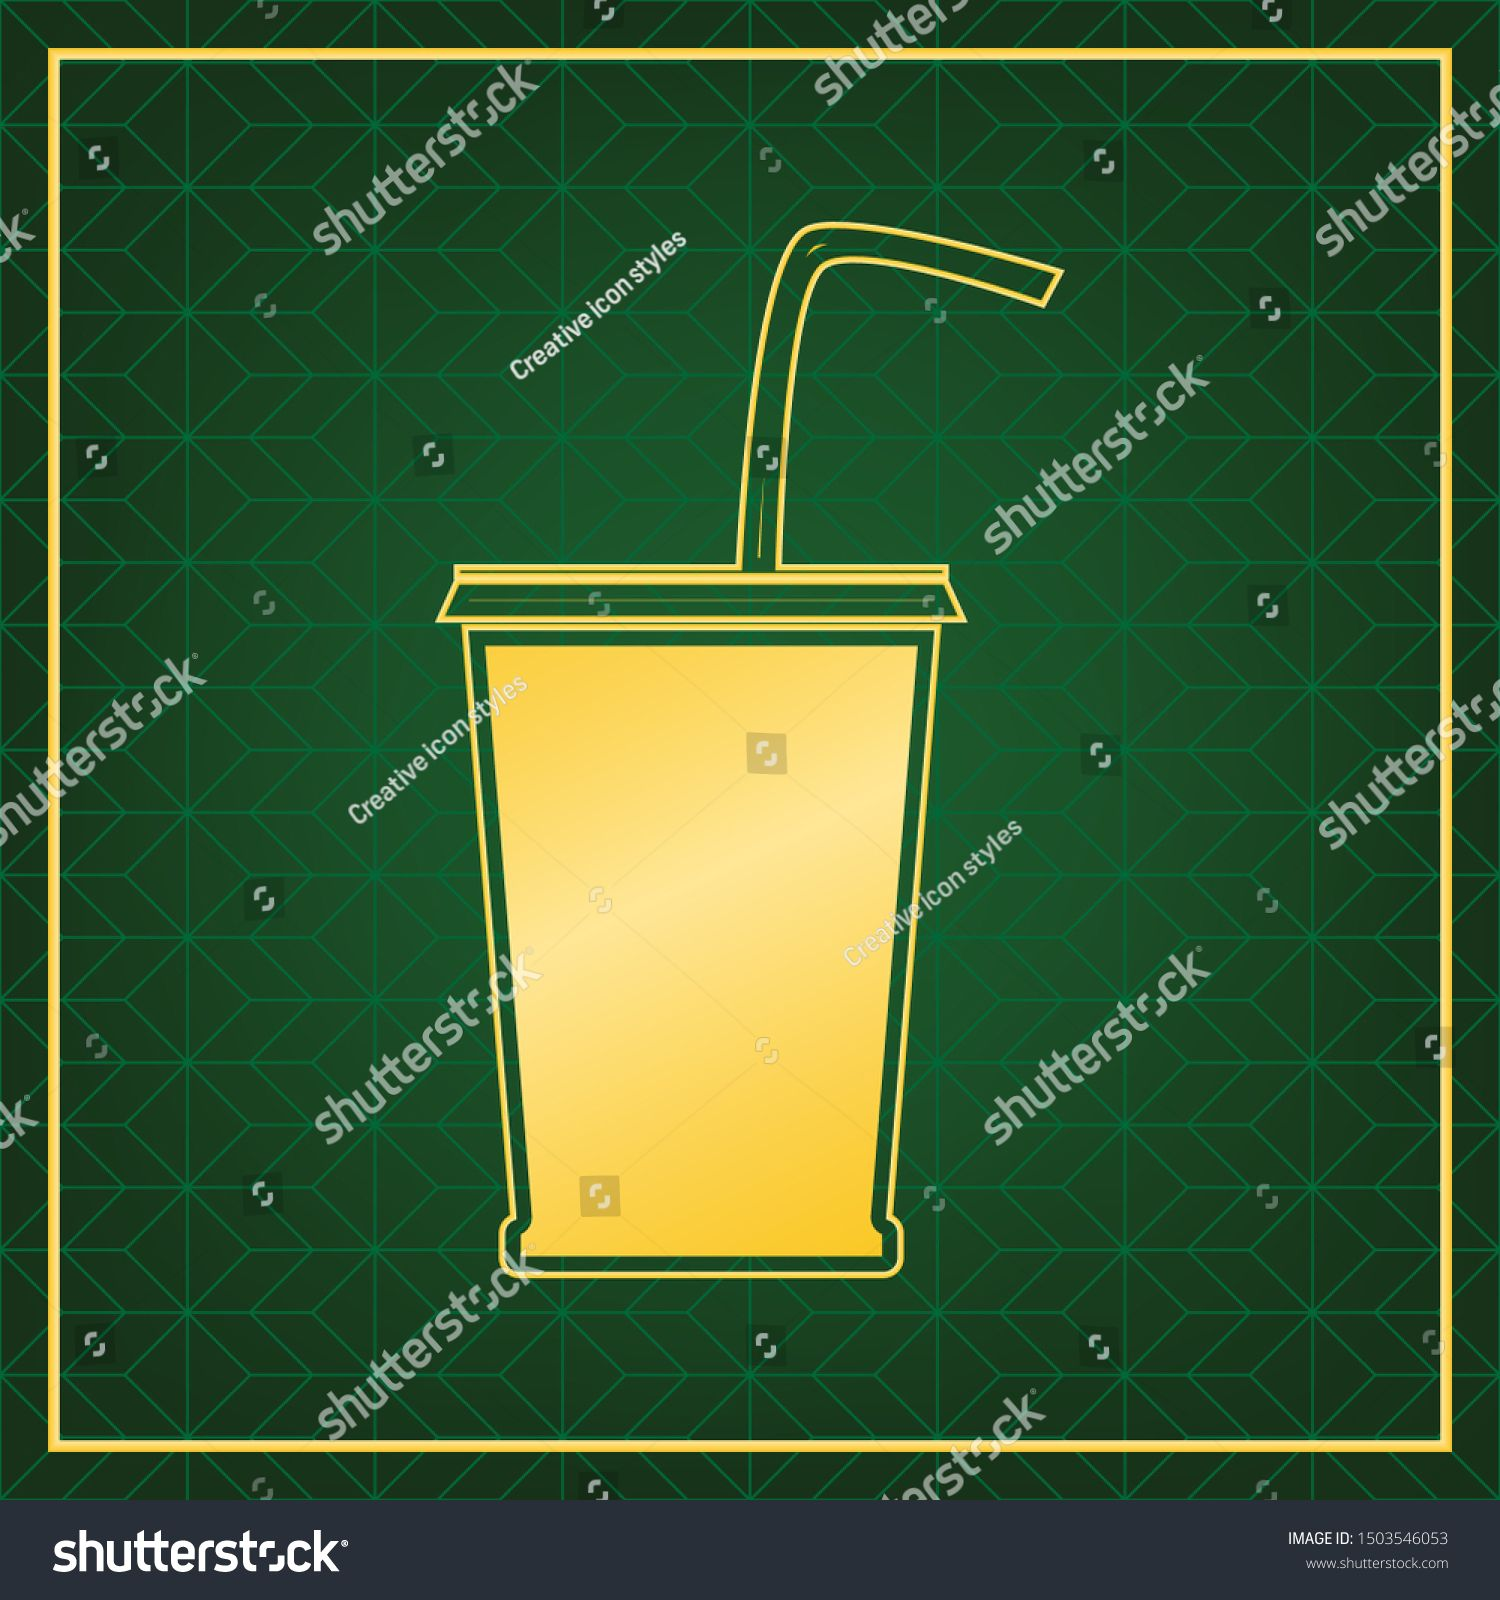 Drink sign illustration. Golden icon with gold contour at dark green gridded white background. Illustration. #Sponsored , #Aff, #Golden#icon#gold#Drink